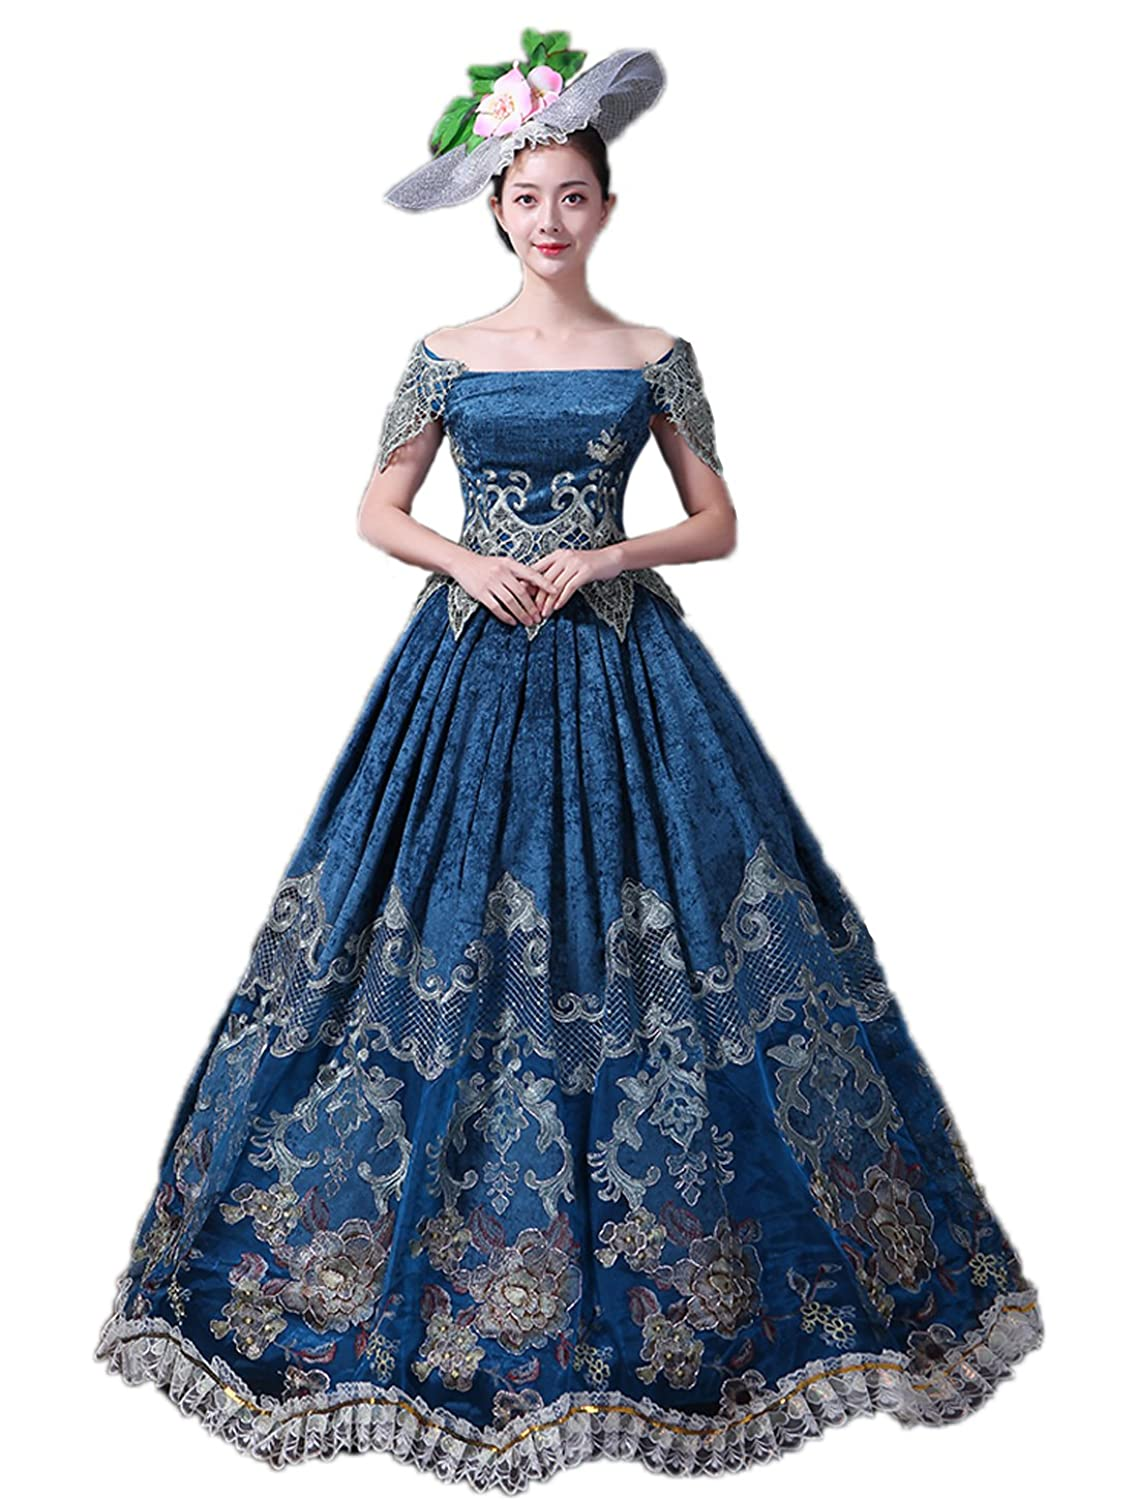 Victorian Dresses, Clothing: Patterns, Costumes, Custom Dresses Zukzi Womens Plus Size Elegant Recoco Victorian Dress Costume Ball Gowns $169.99 AT vintagedancer.com